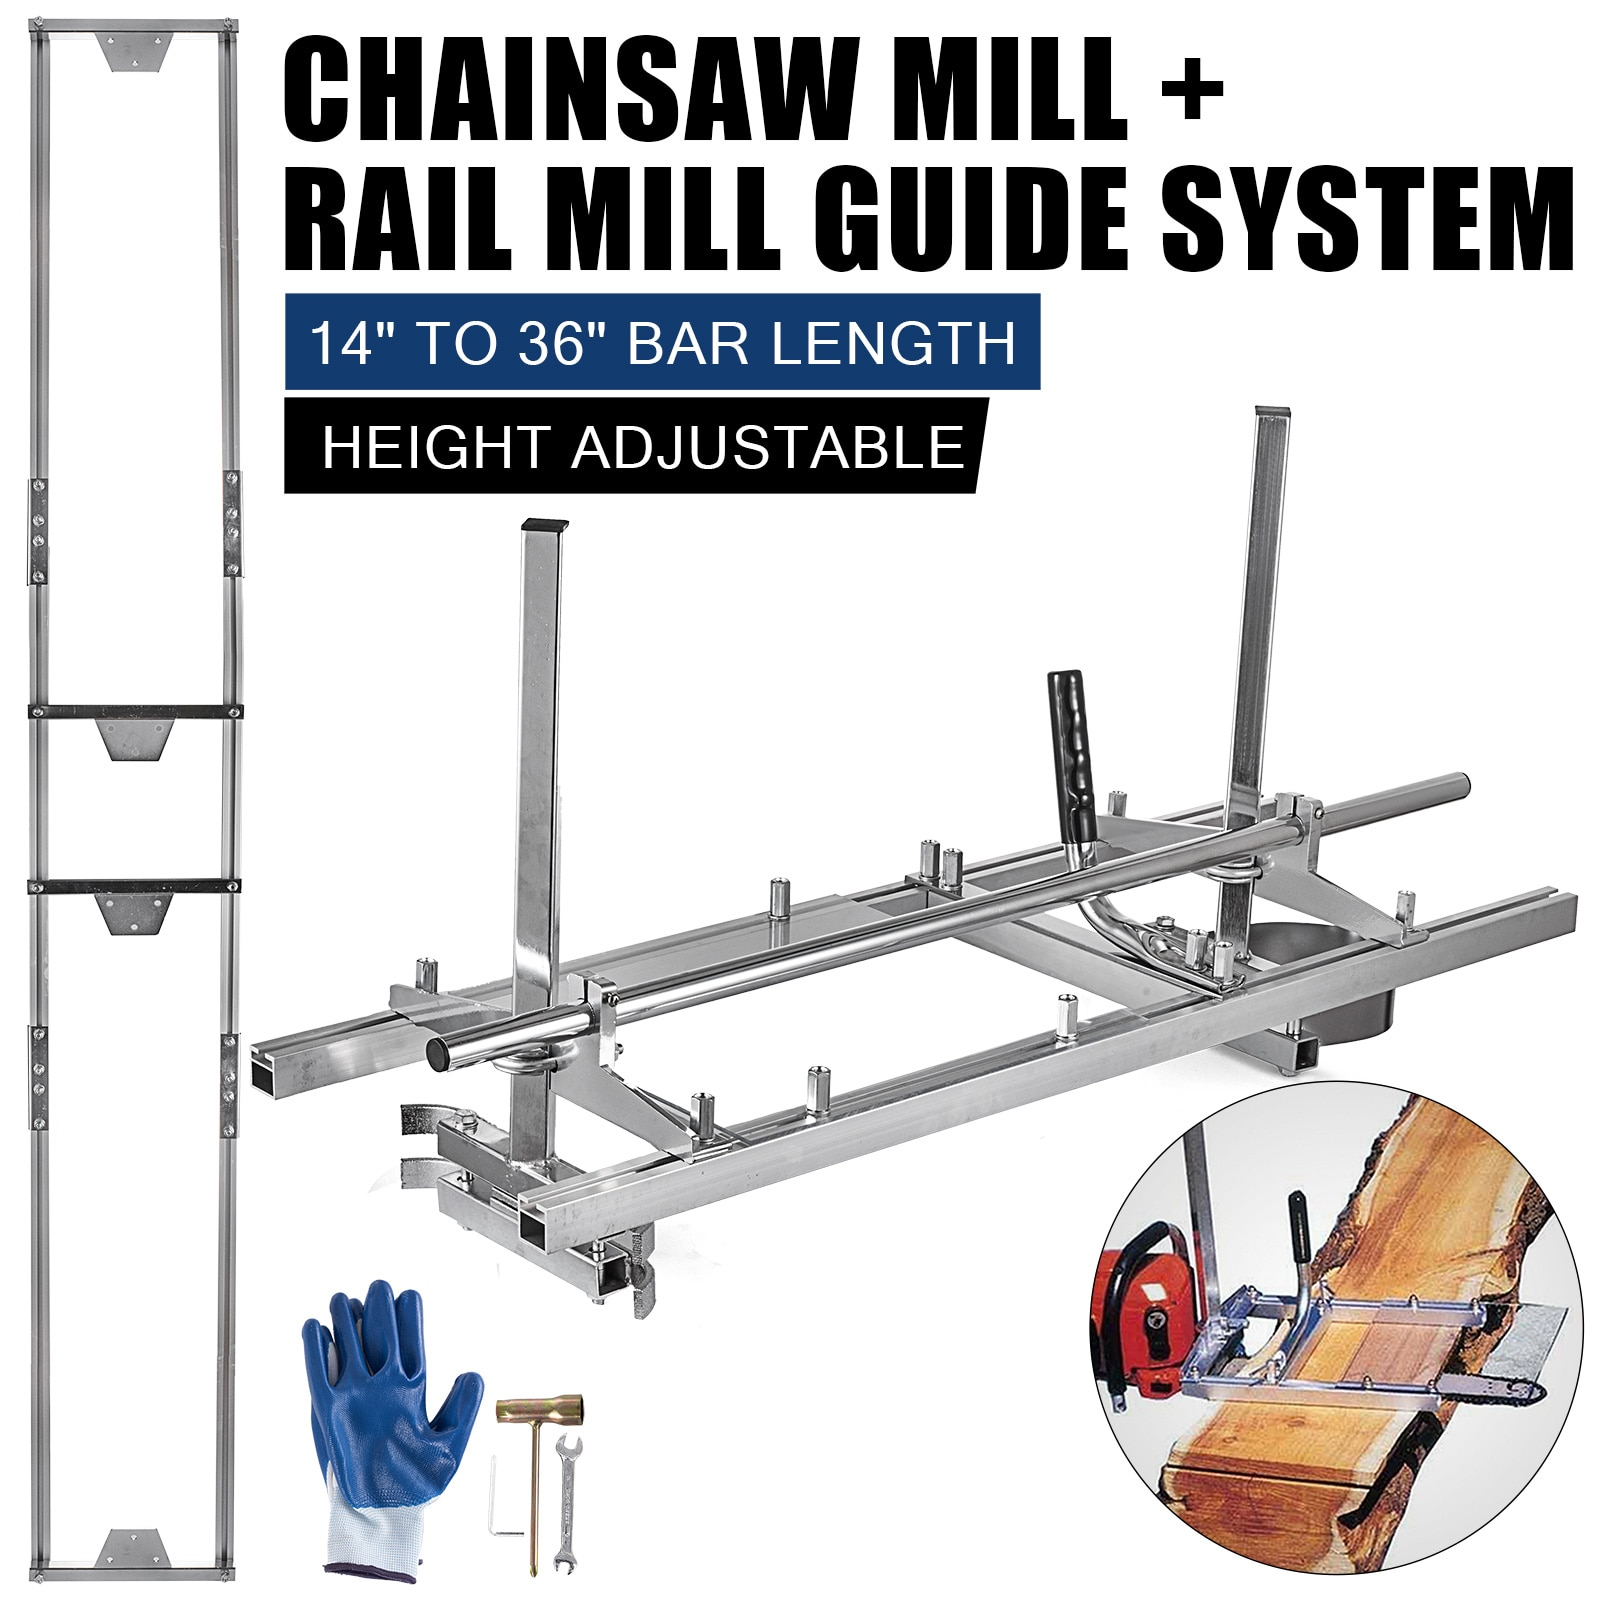 36Inch Chainsaw Mill Portable Milling Planking Rail System Aluminum Rail Guide Bar System Garden Power Wood Lumber Cutting Tools